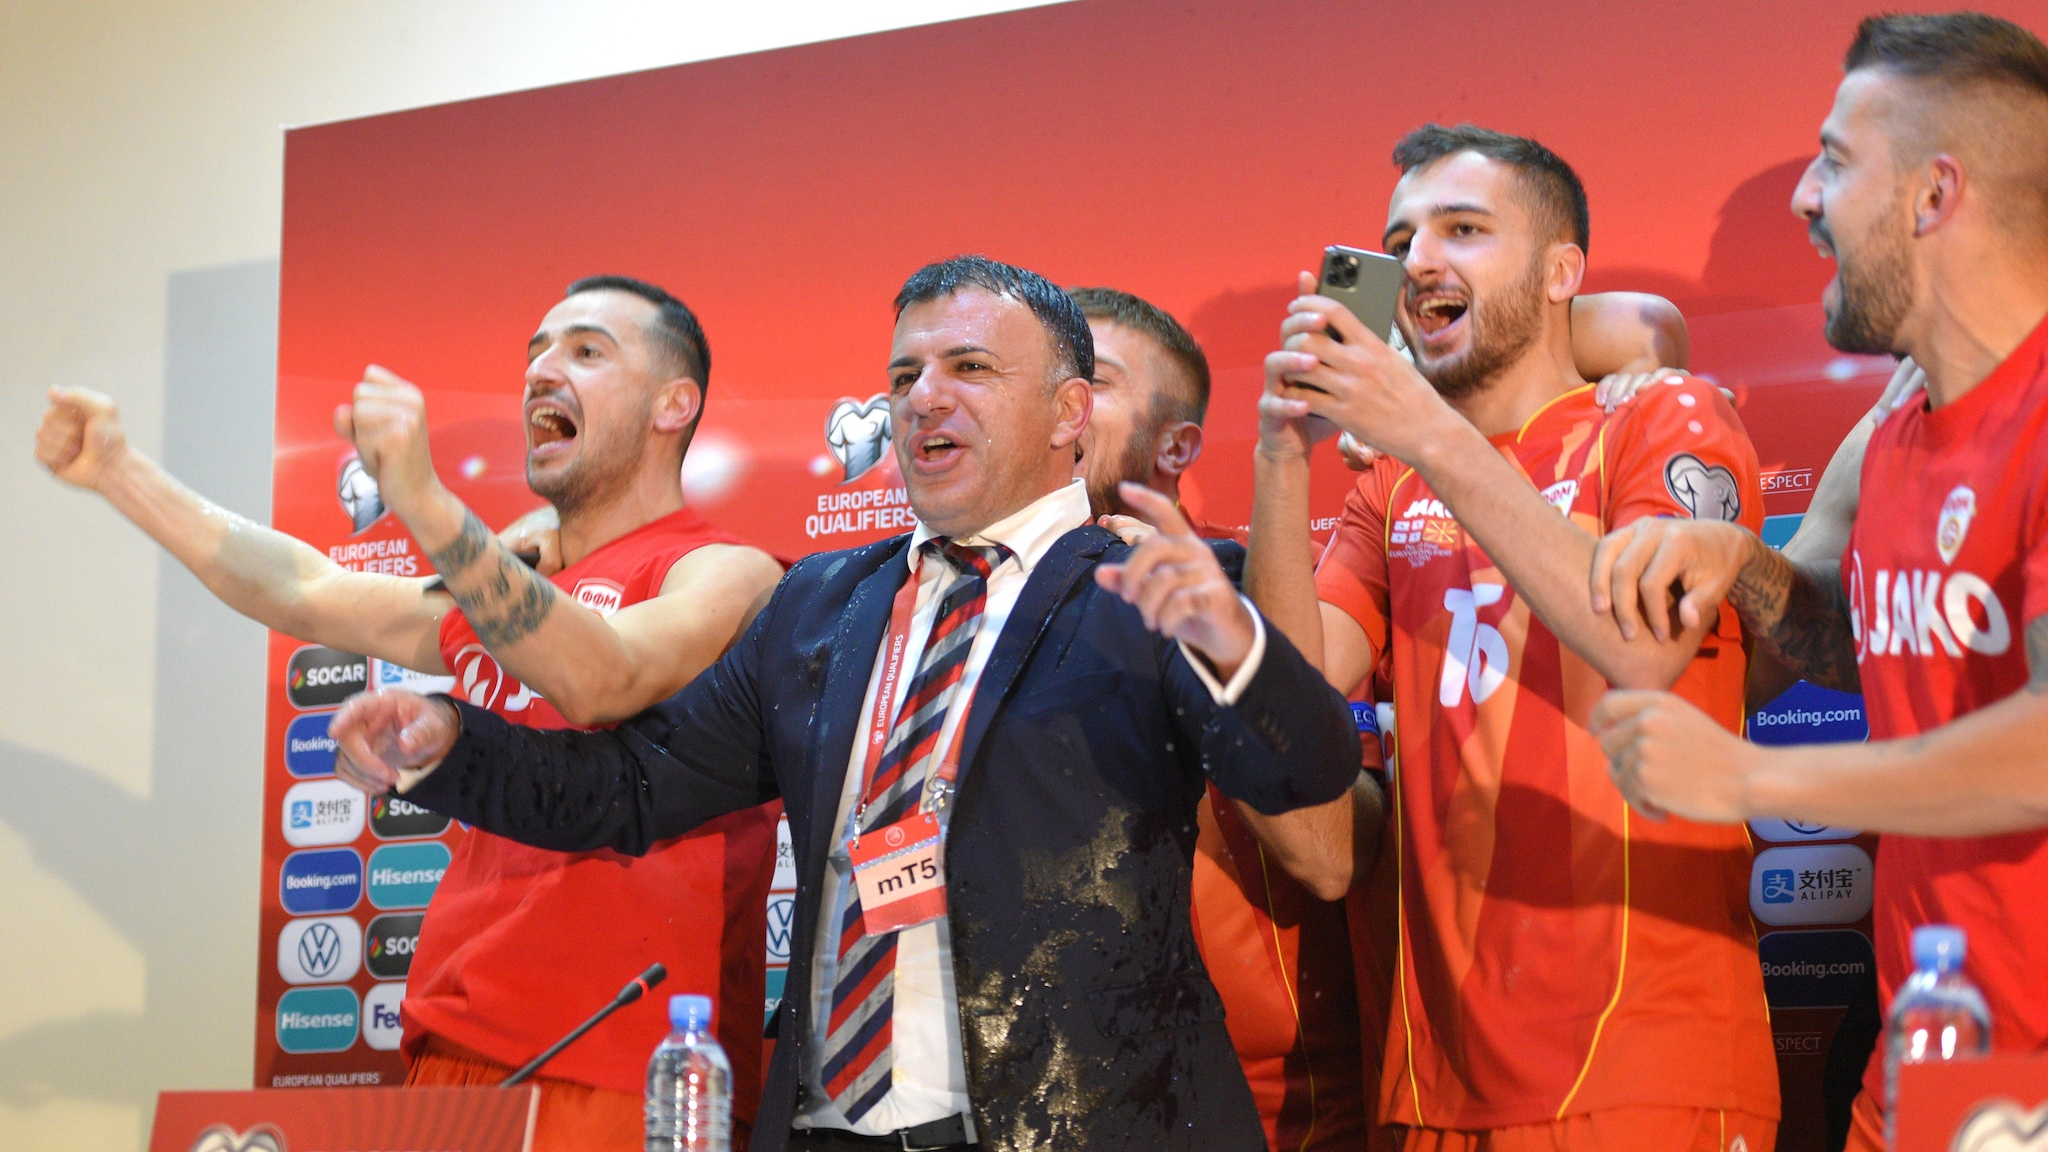 UEFA EURO 2020 qualifying group and play-off results